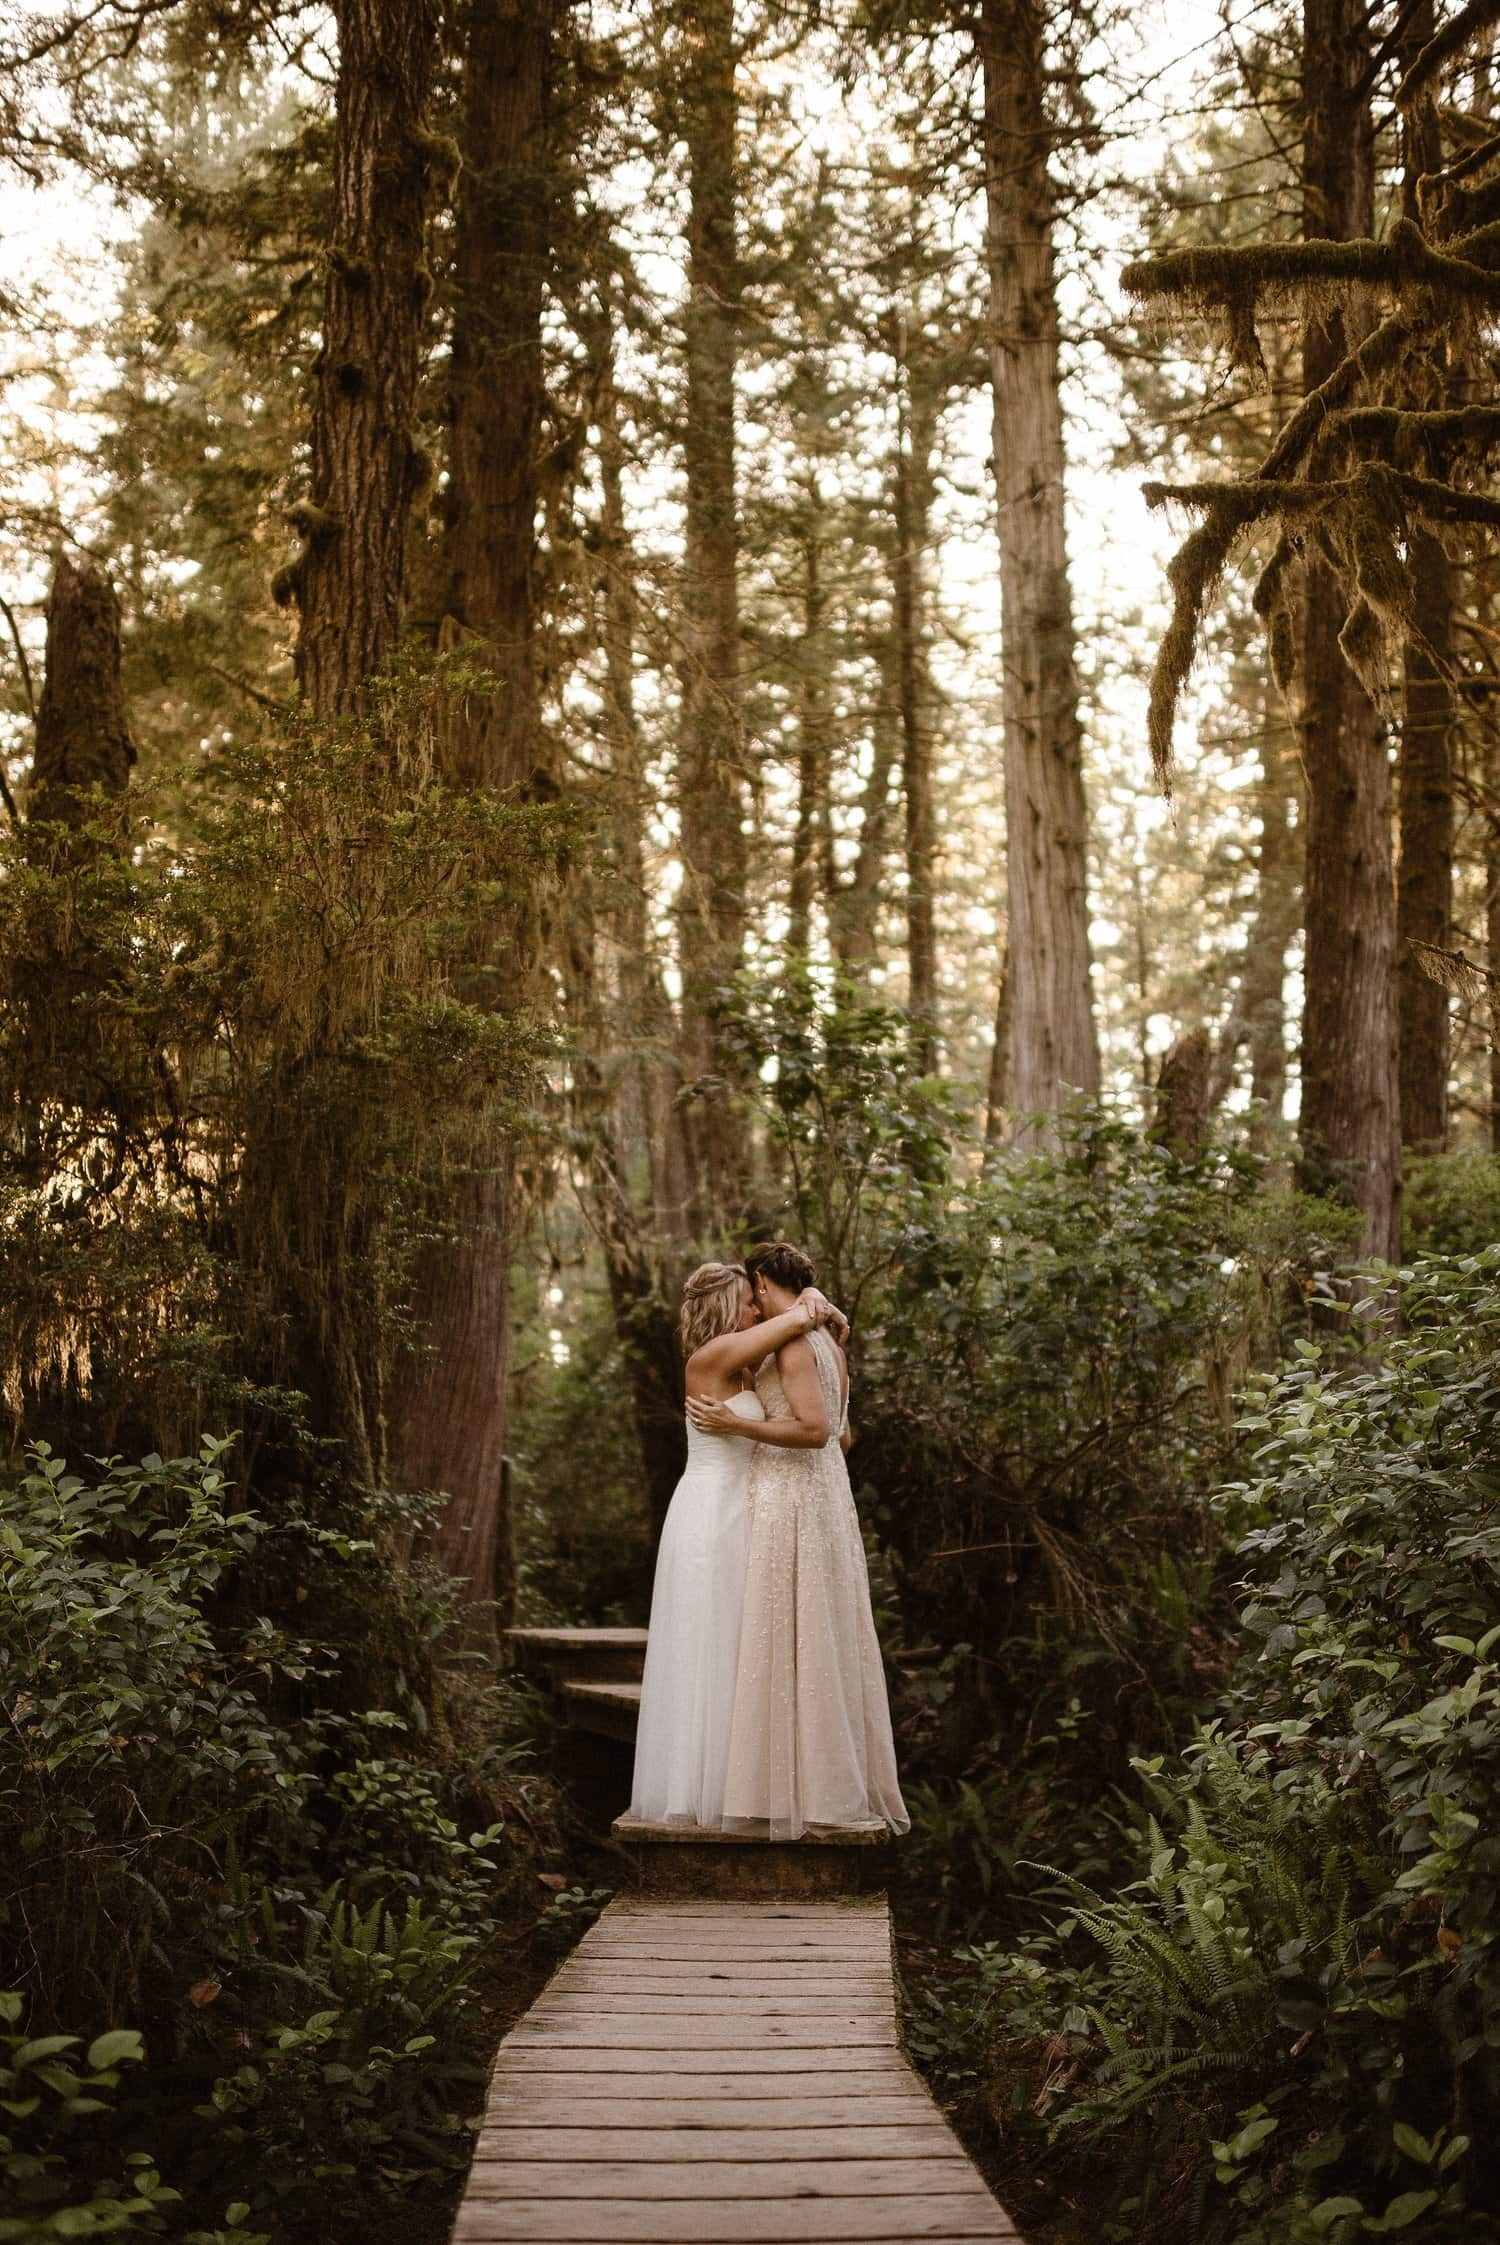 Two brides embrace in a forest.